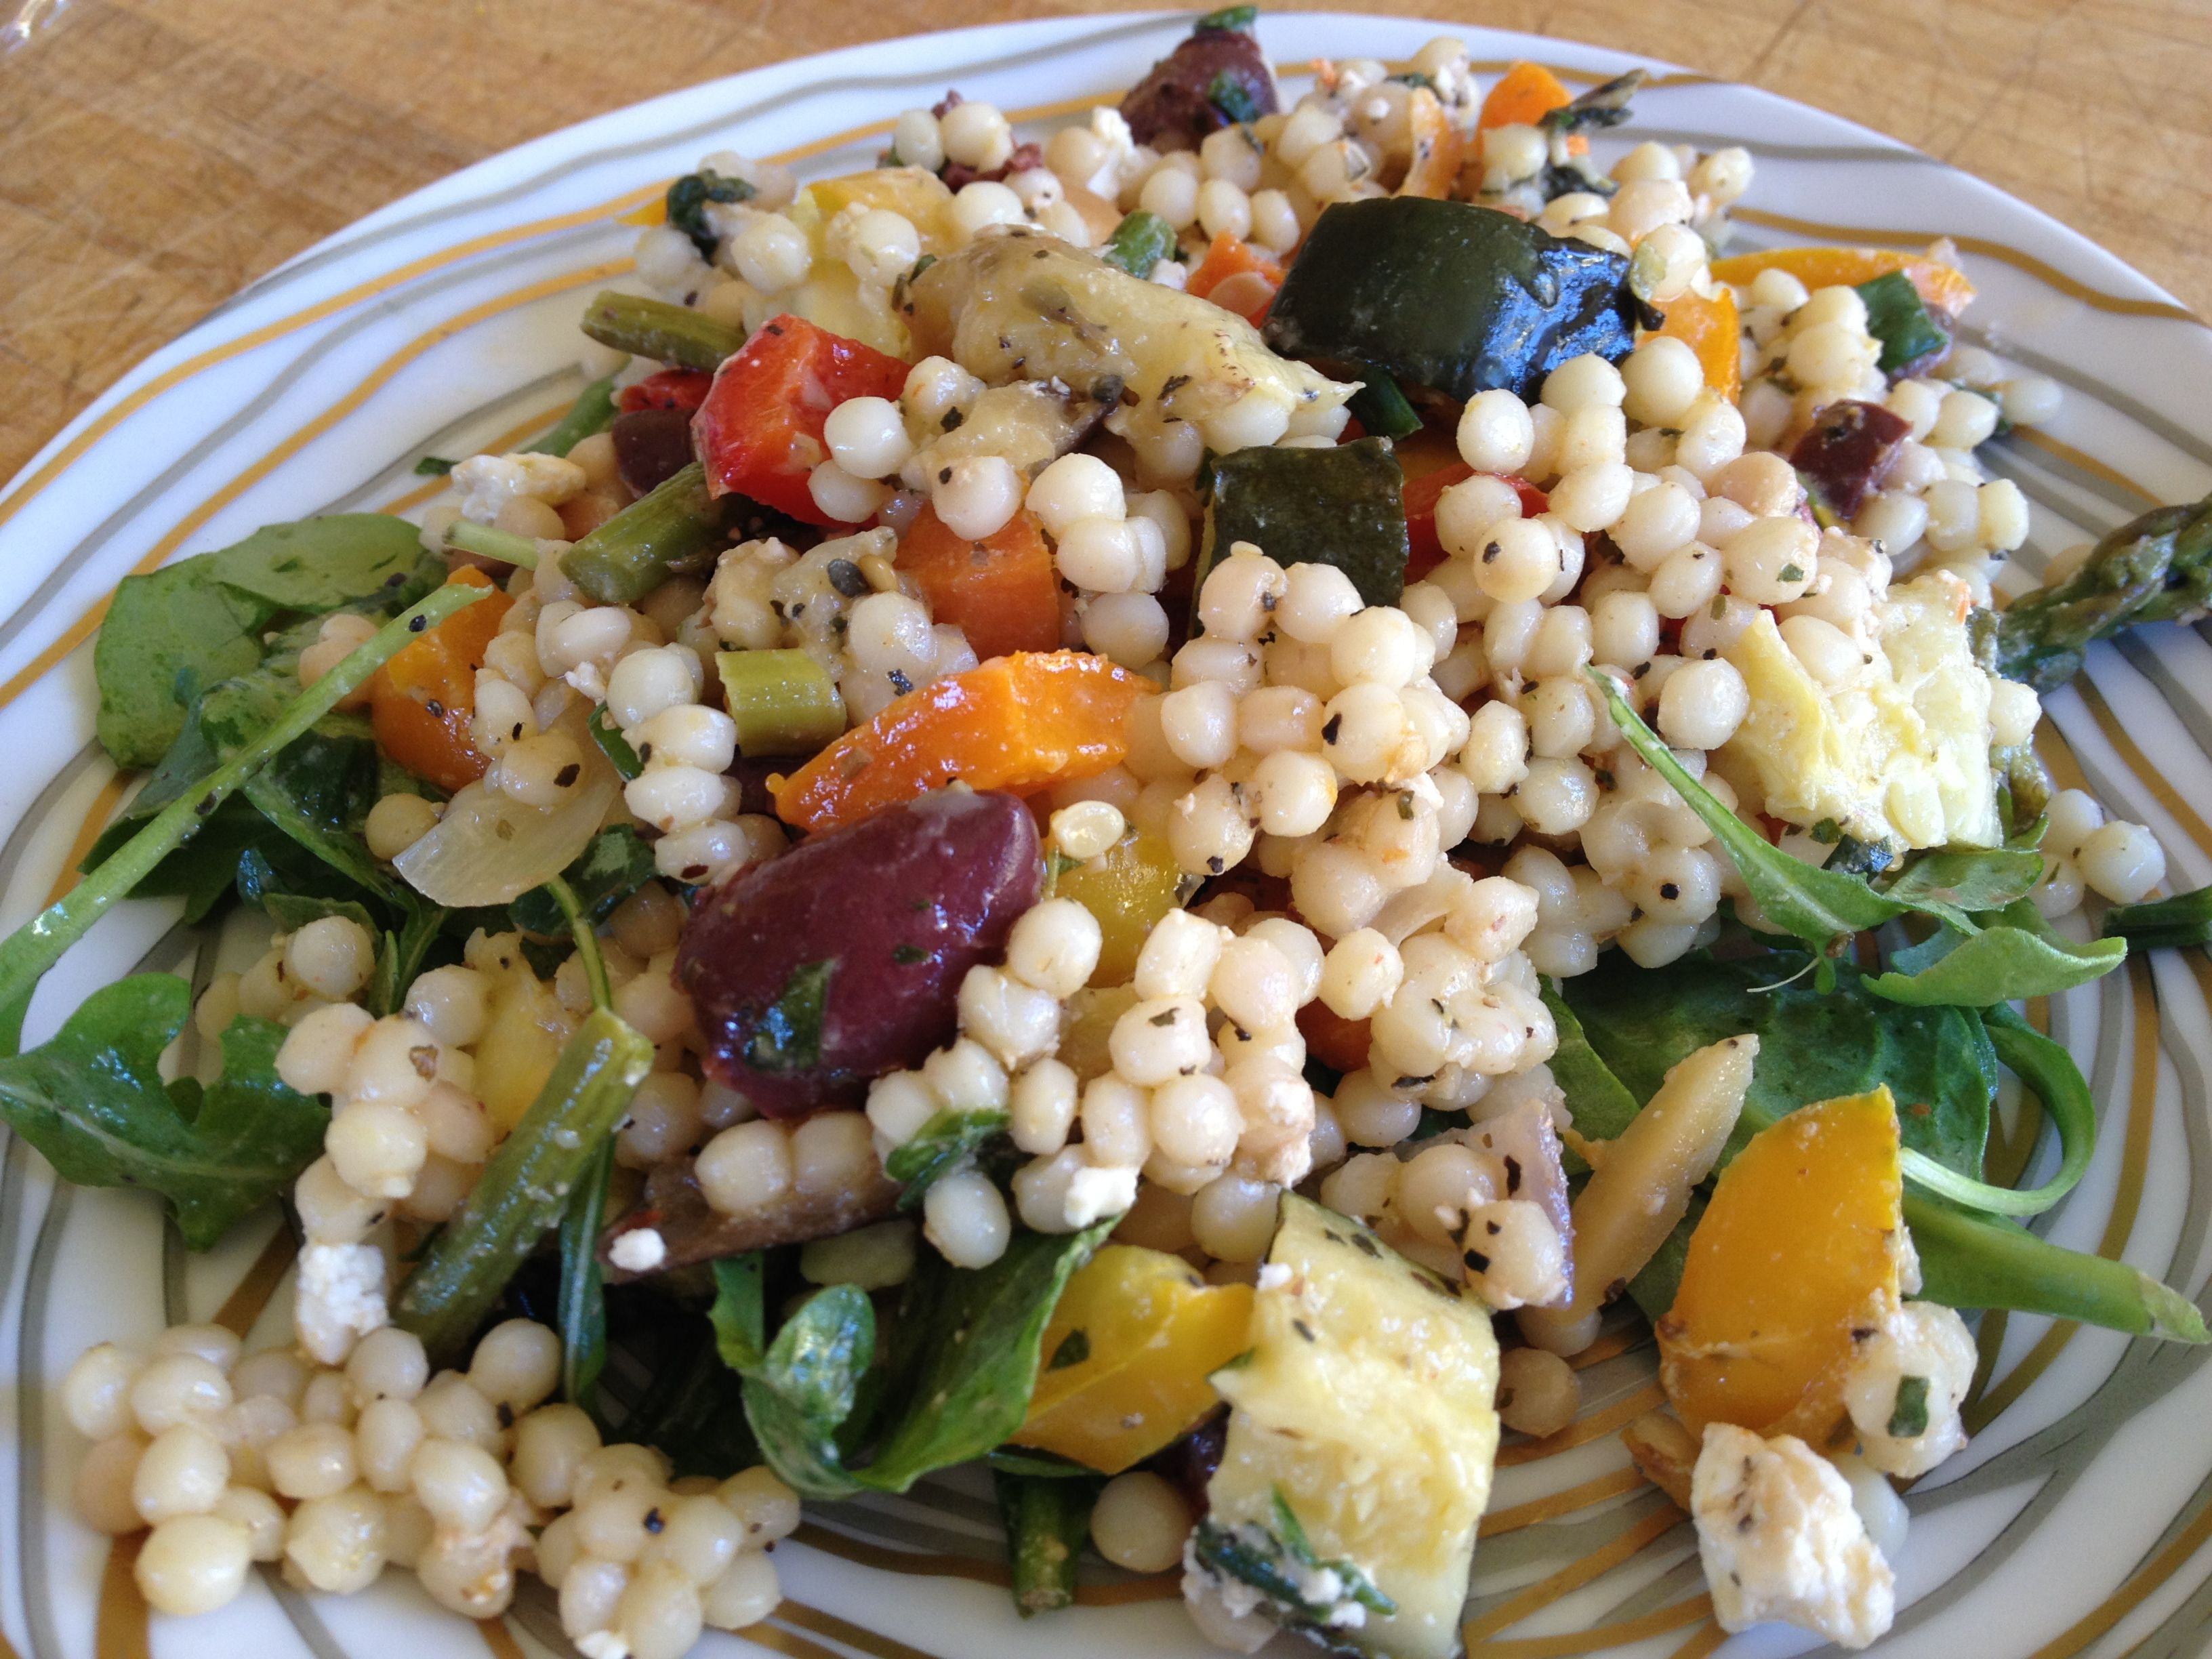 Summer vegetables are deliciously grilled, and paired with couscous pearls (or quinoa for gluten-free enjoyment)!